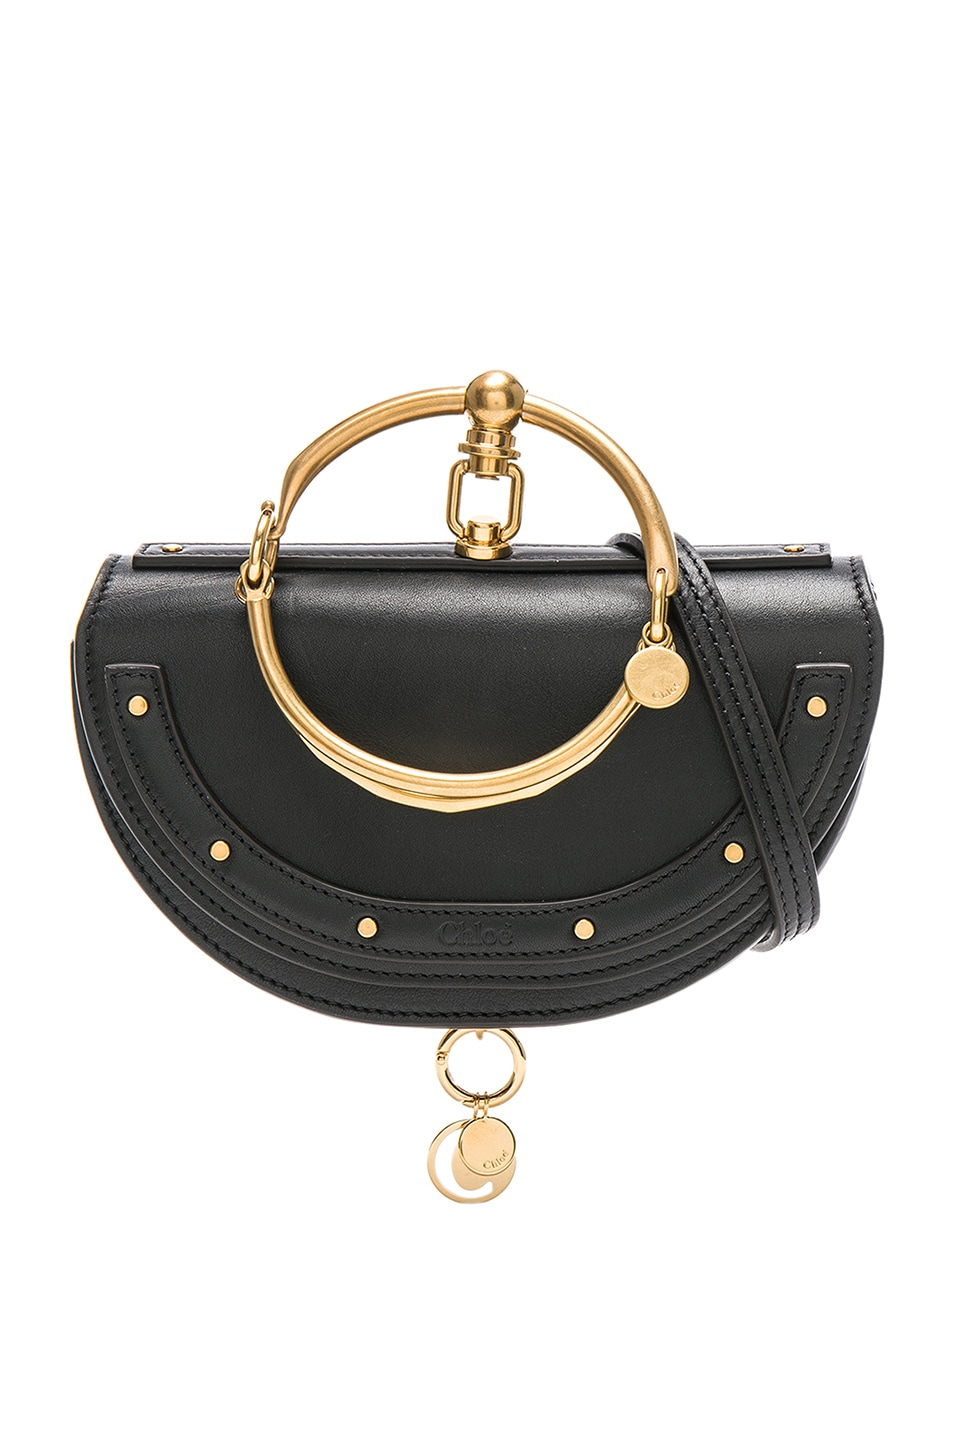 Image 1 of Chloe Small Nile Leather Minaudiere in Black